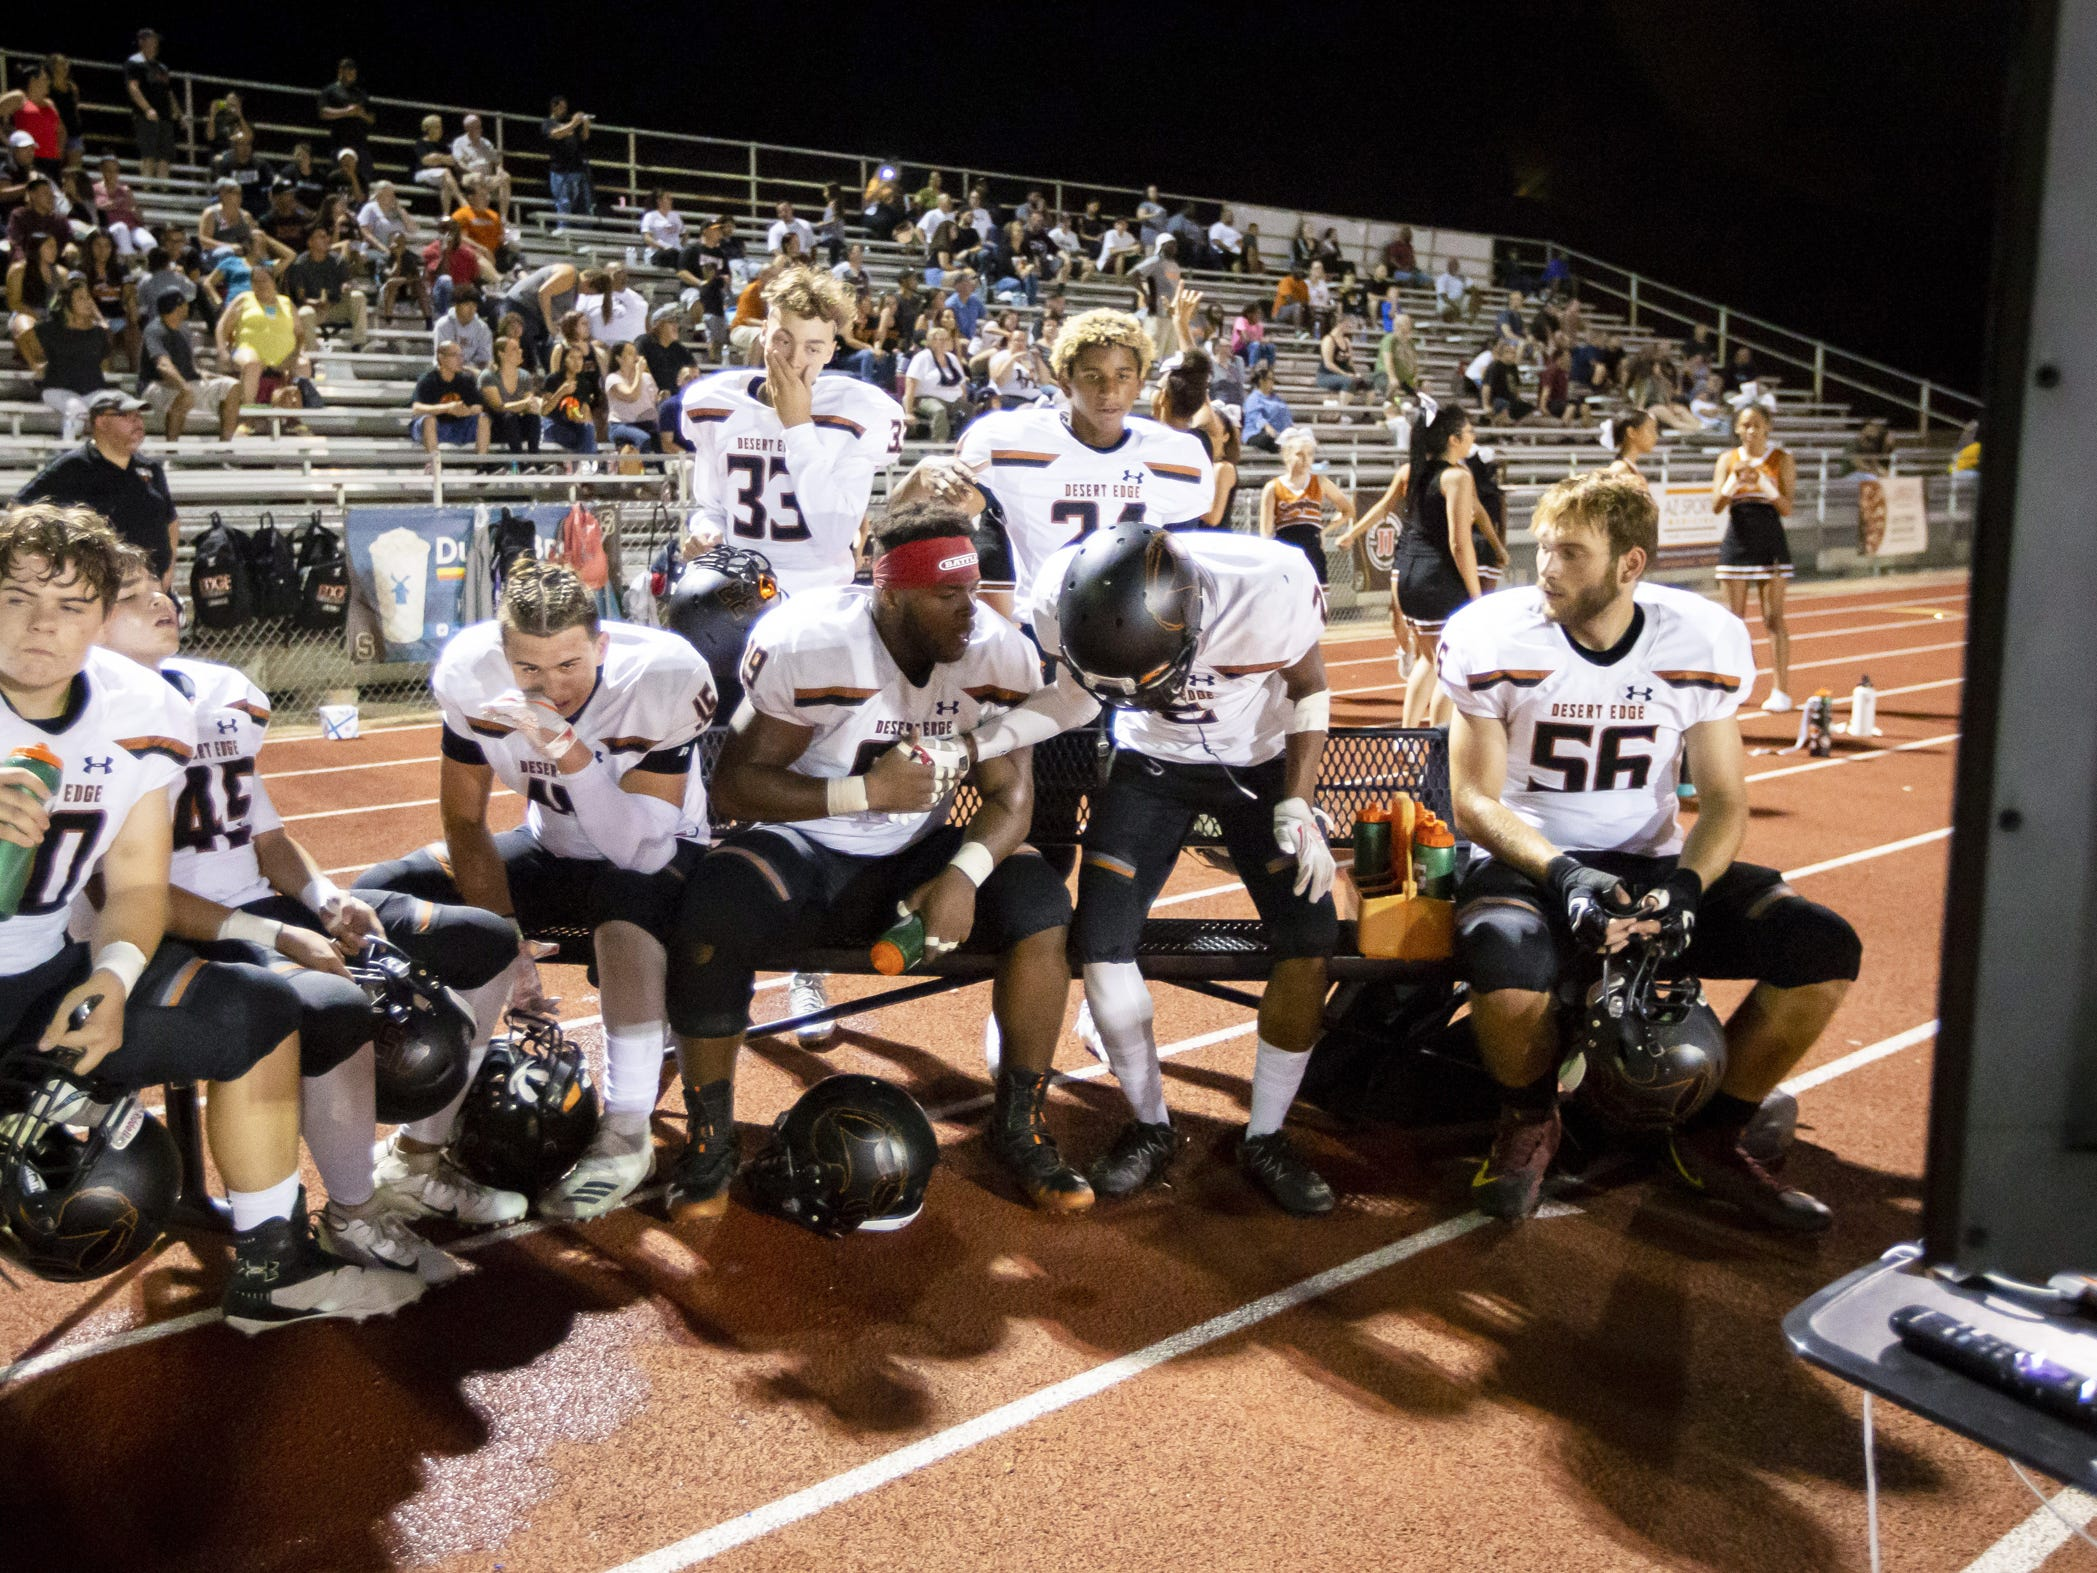 The Desert Edge Scorpions review a play against the Saguaro Sabercats at Saguaro High School on Friday, September 28, 2018 in Scottsdale, Arizona. #azhsfb